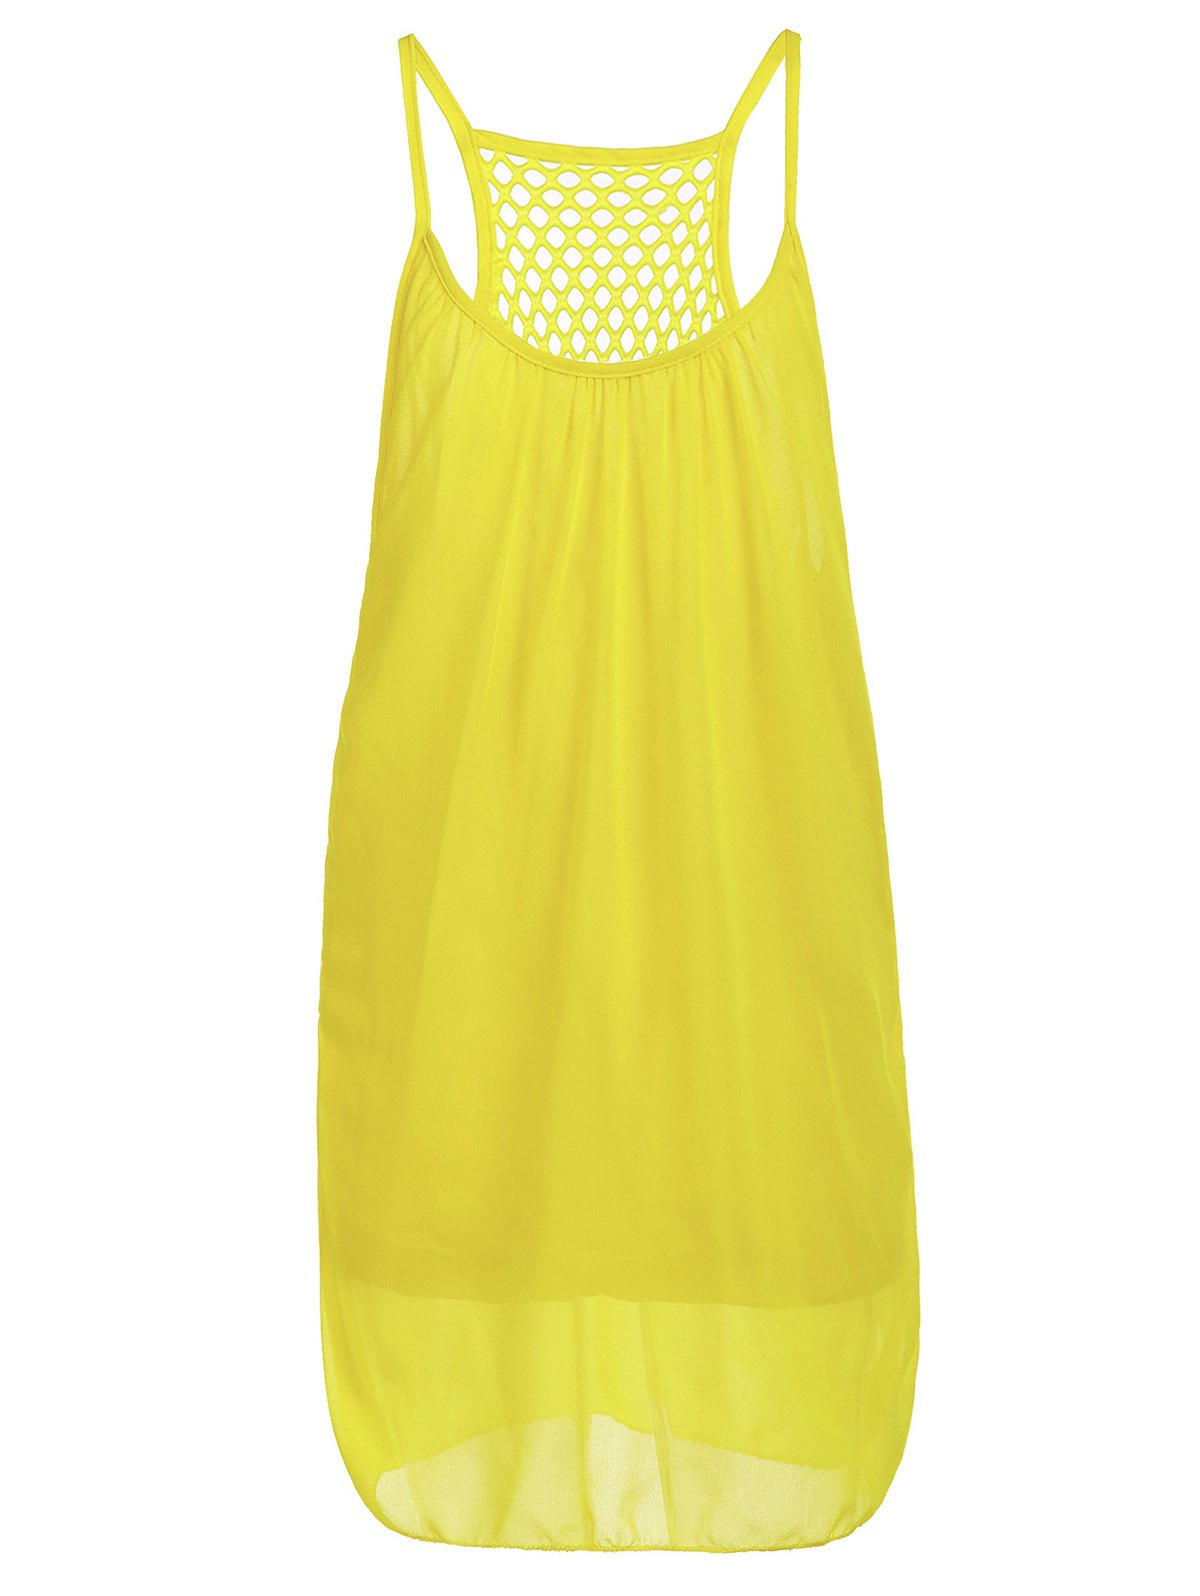 Stylish Women's Strappy Hollow Out Racerback Chiffon Dress - YELLOW M